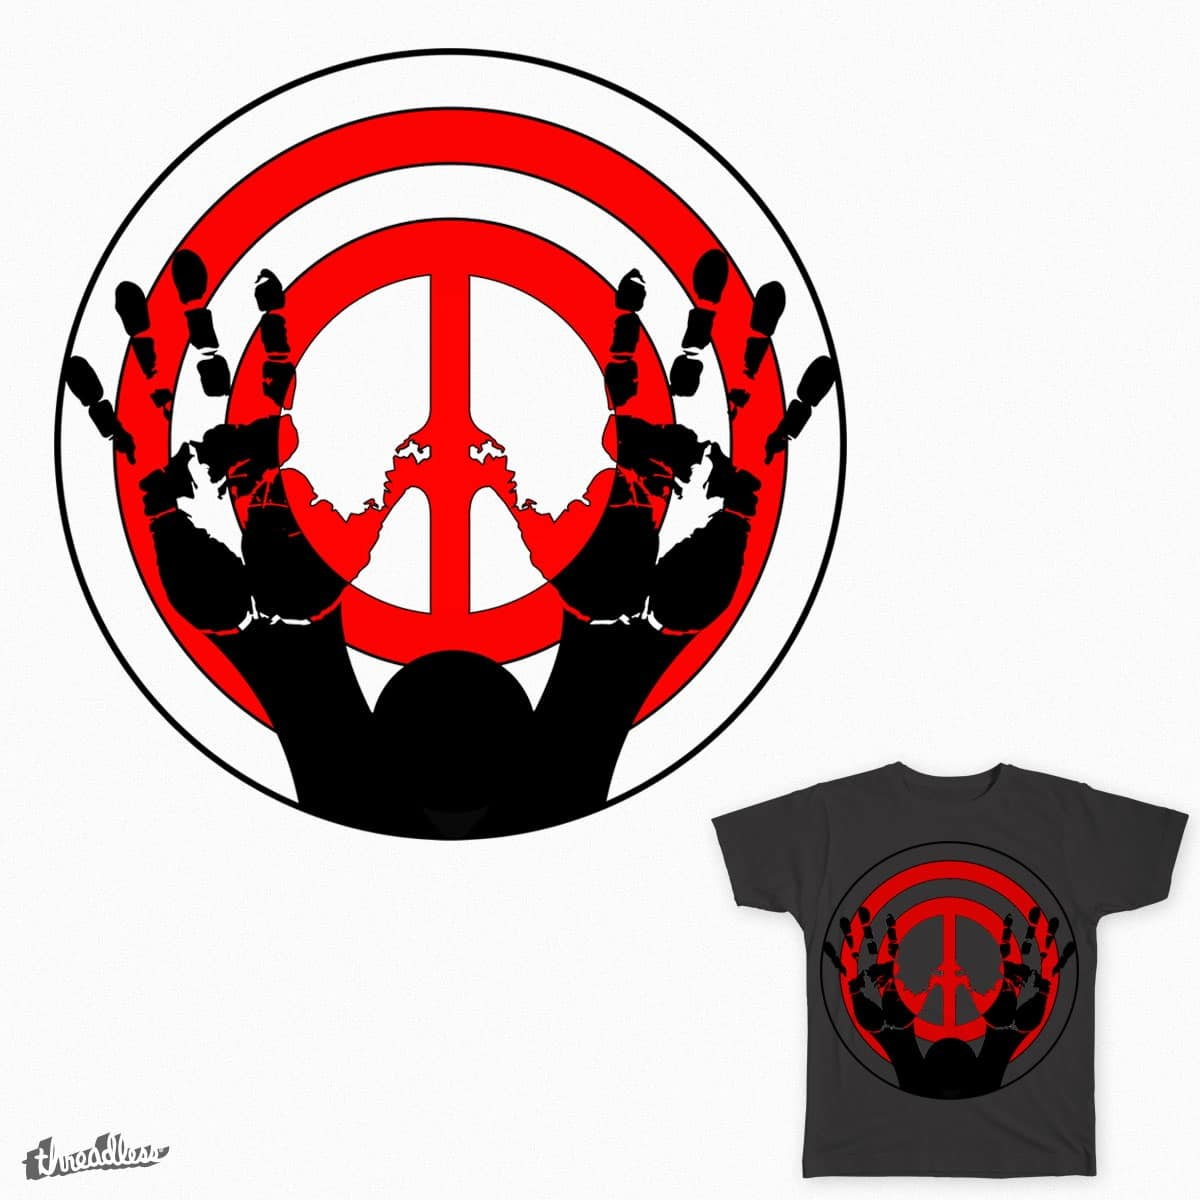 Score Hands Up To Stop Police Brutality By Handsupmovement On Threadless